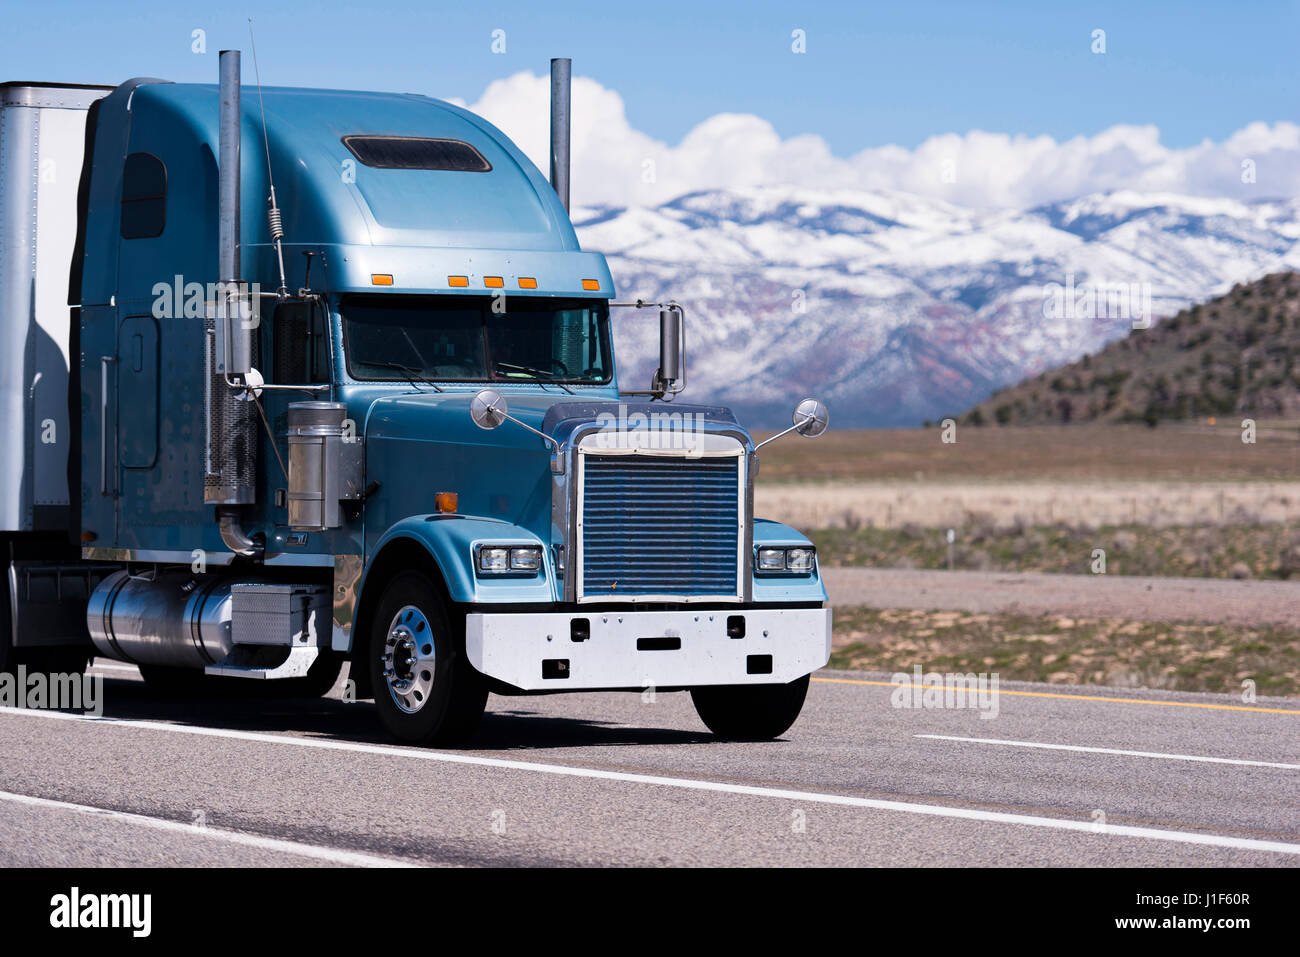 https www alamy com stock photo classic big rig blue semi truck with trailer and tall exhaust pipes 138631607 html